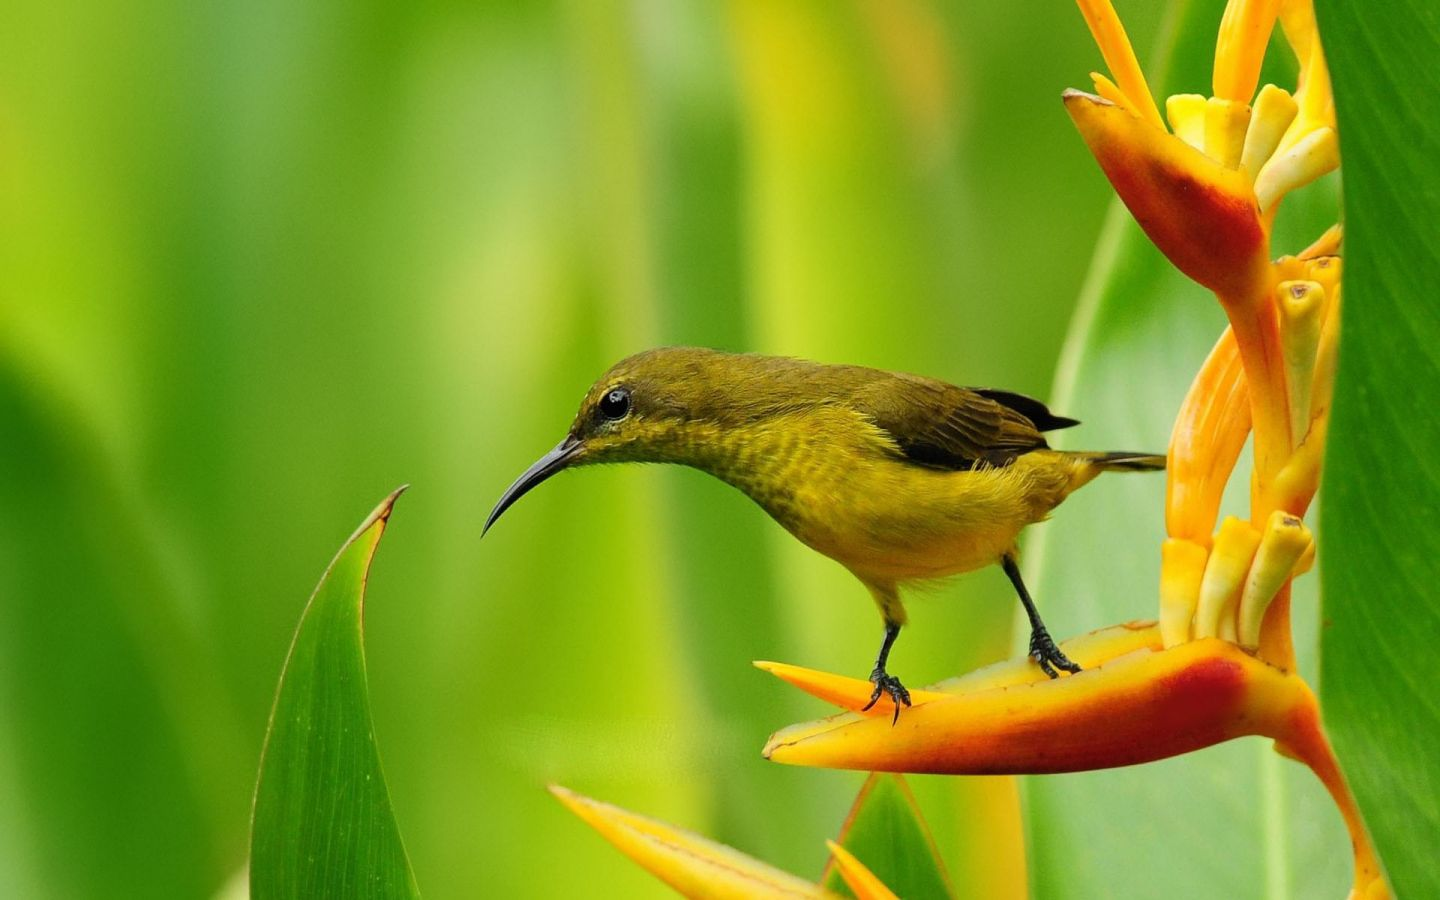 Birds free Wallpaper Photos: Birds Of Paradise Wallpaper